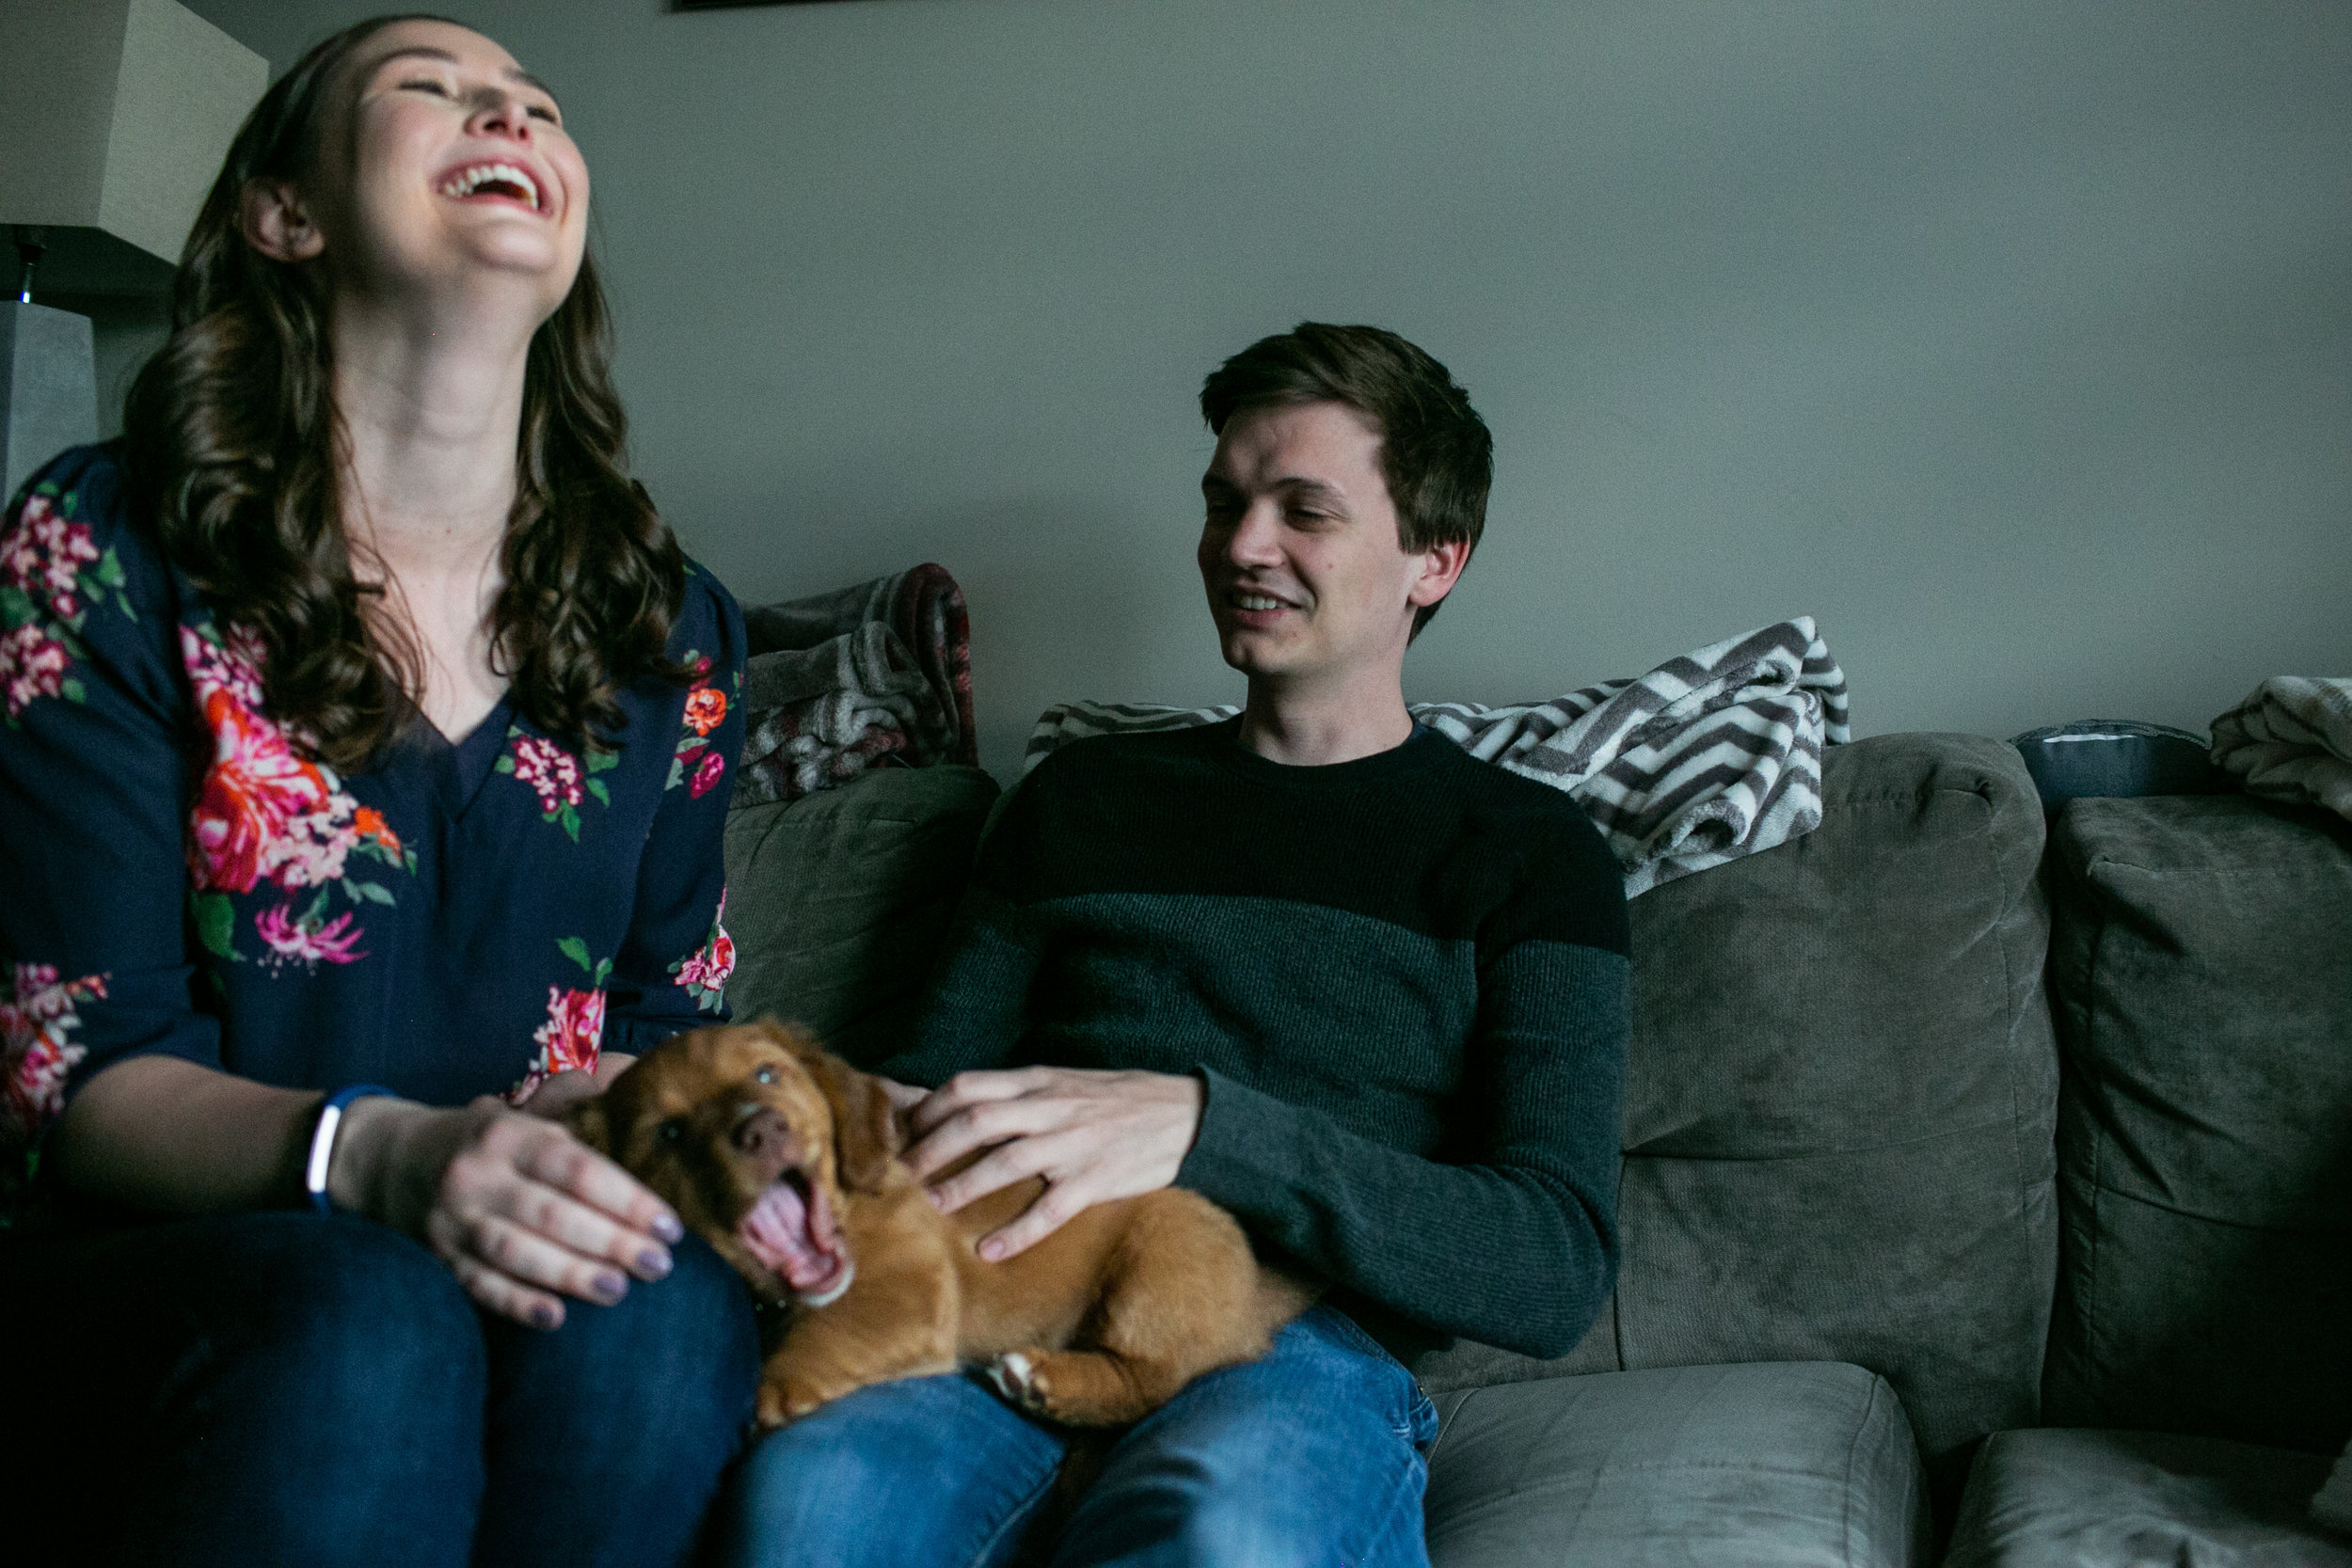 A pupping engagement session in Petworth